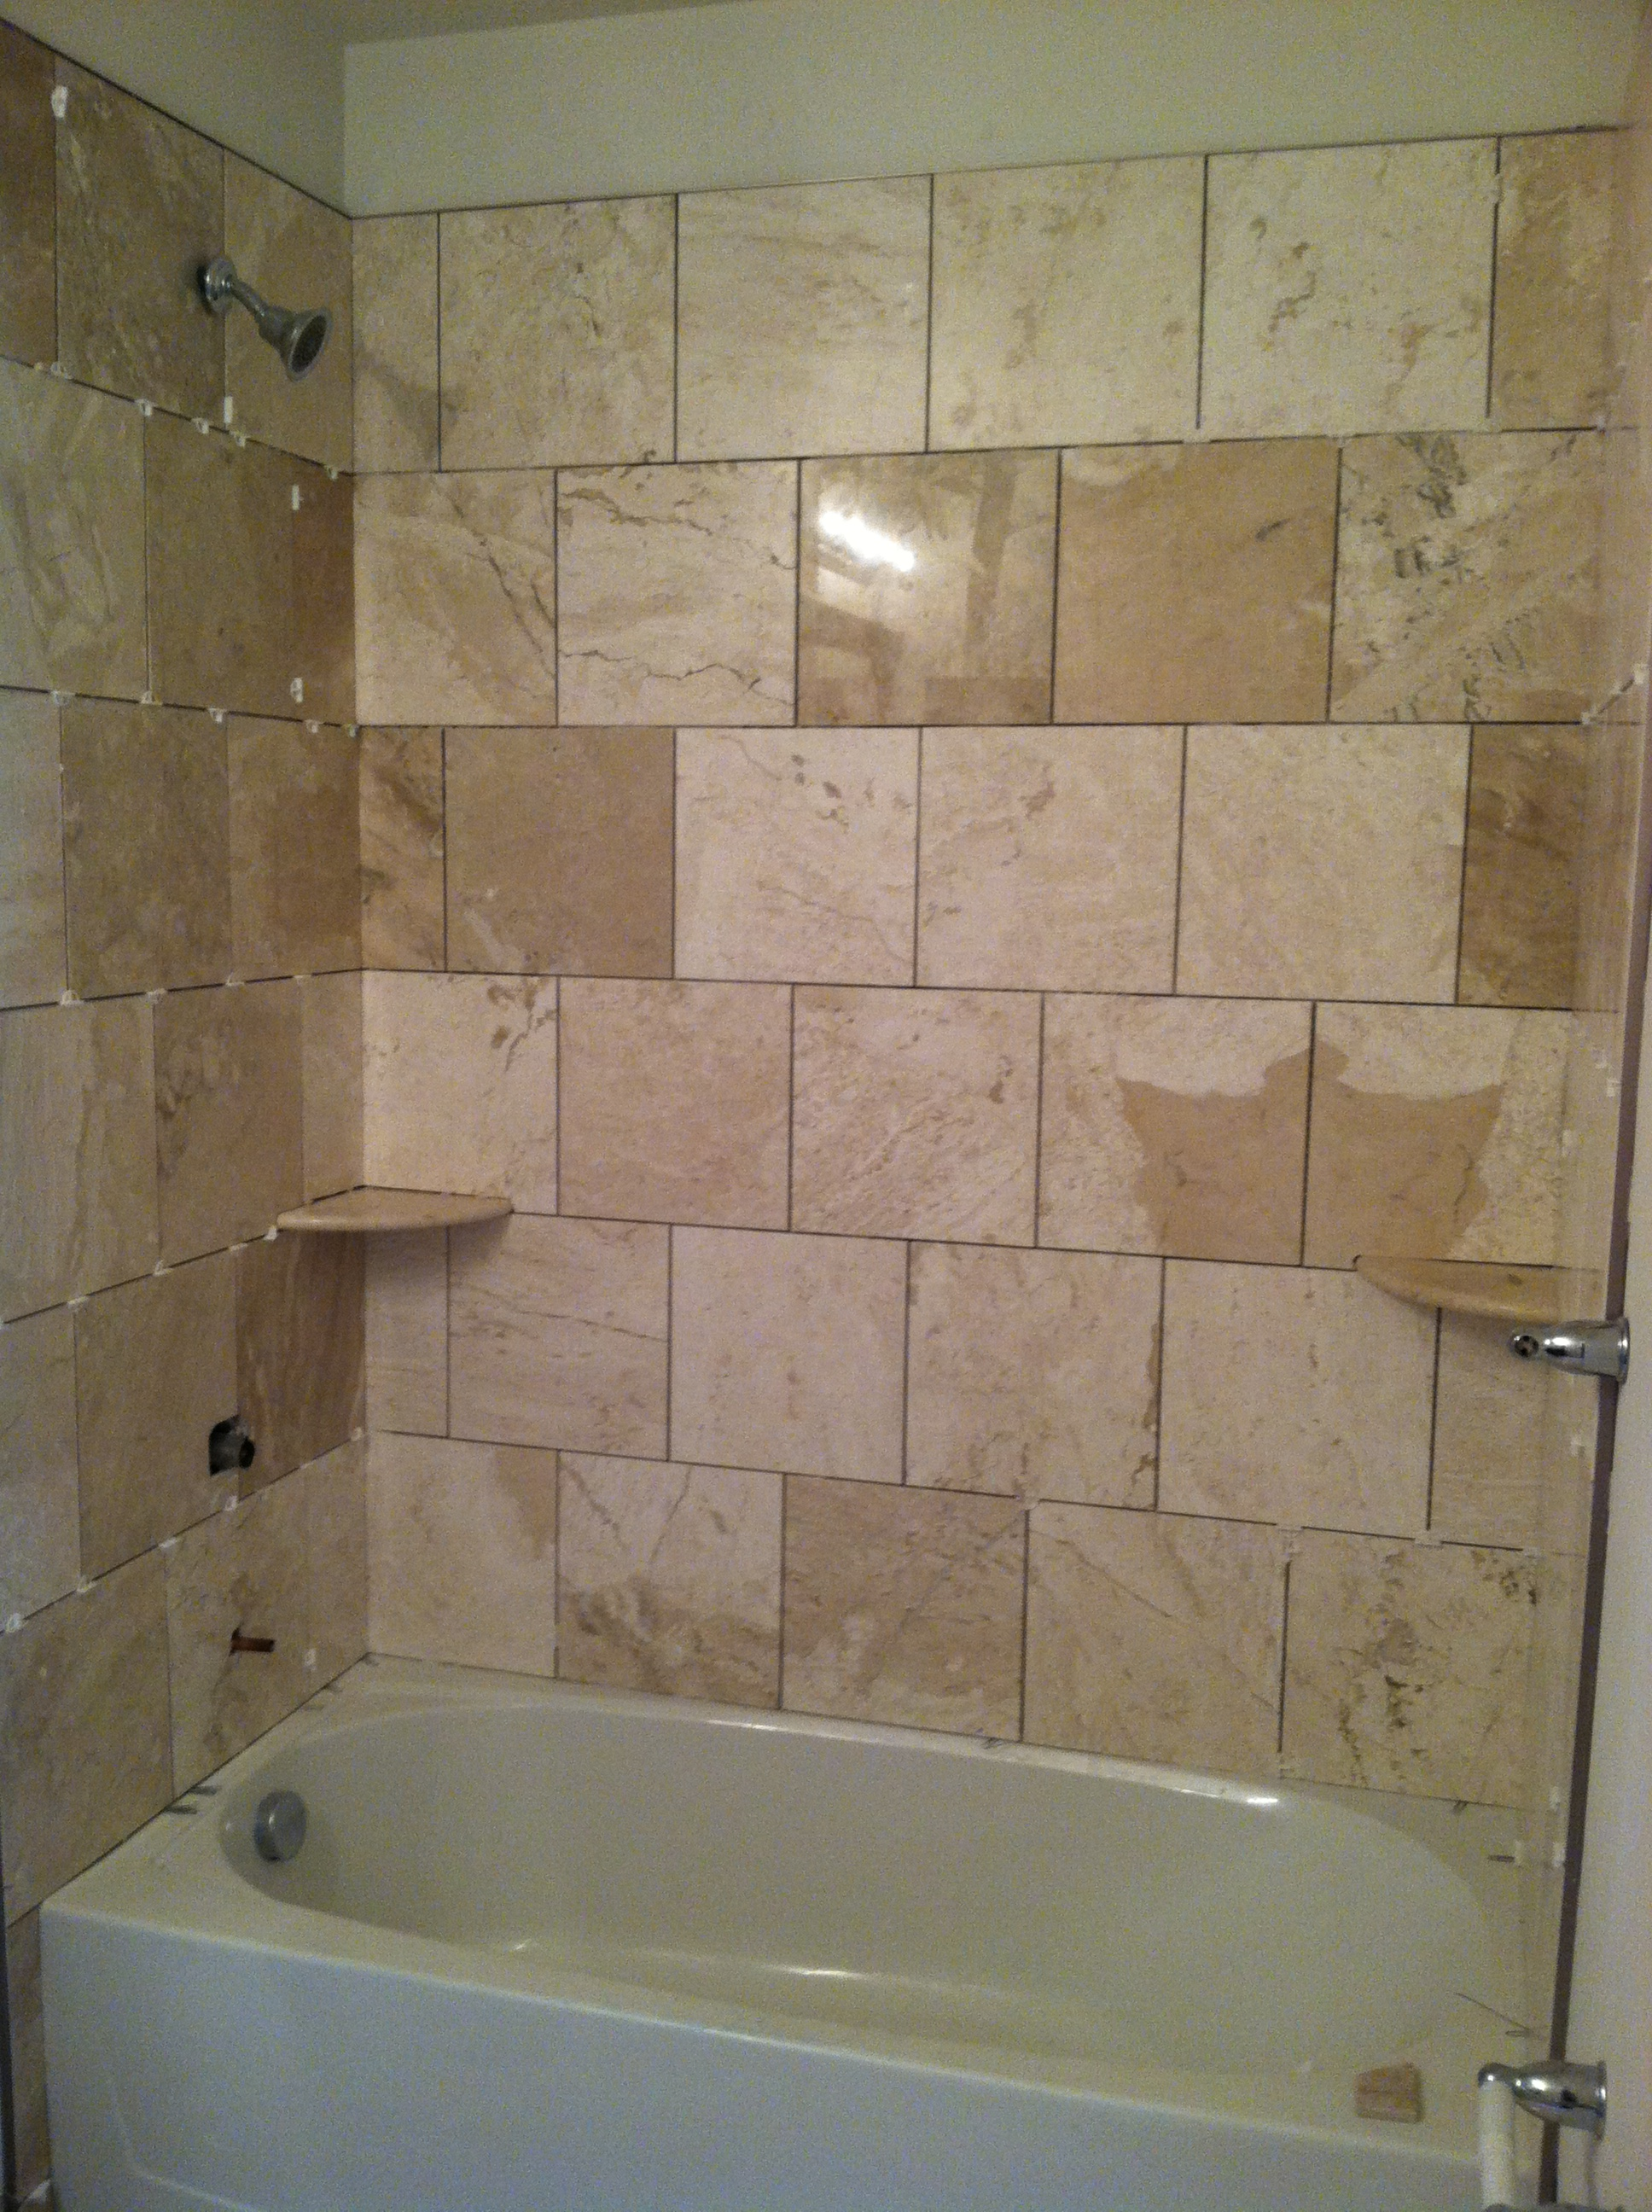 South New Jersey Remodeling House Renovation Home Improvement Contractor  Design Build Addition Kitchen Bath Bathroom Shower